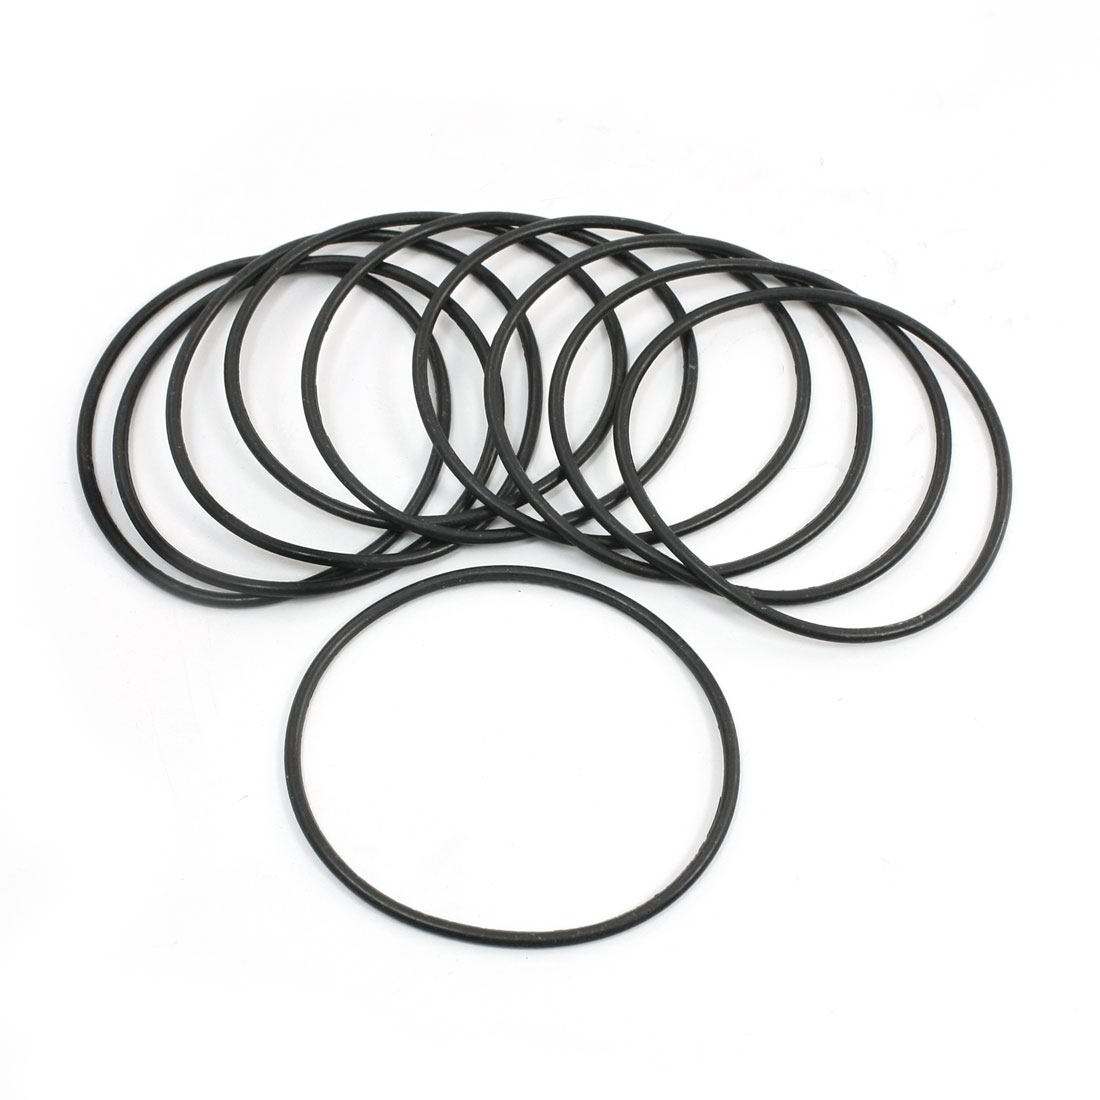 Replacement Flexible Industrial Rubber Oil Seal O Rings 72.3x2.65mm 10 Pcs